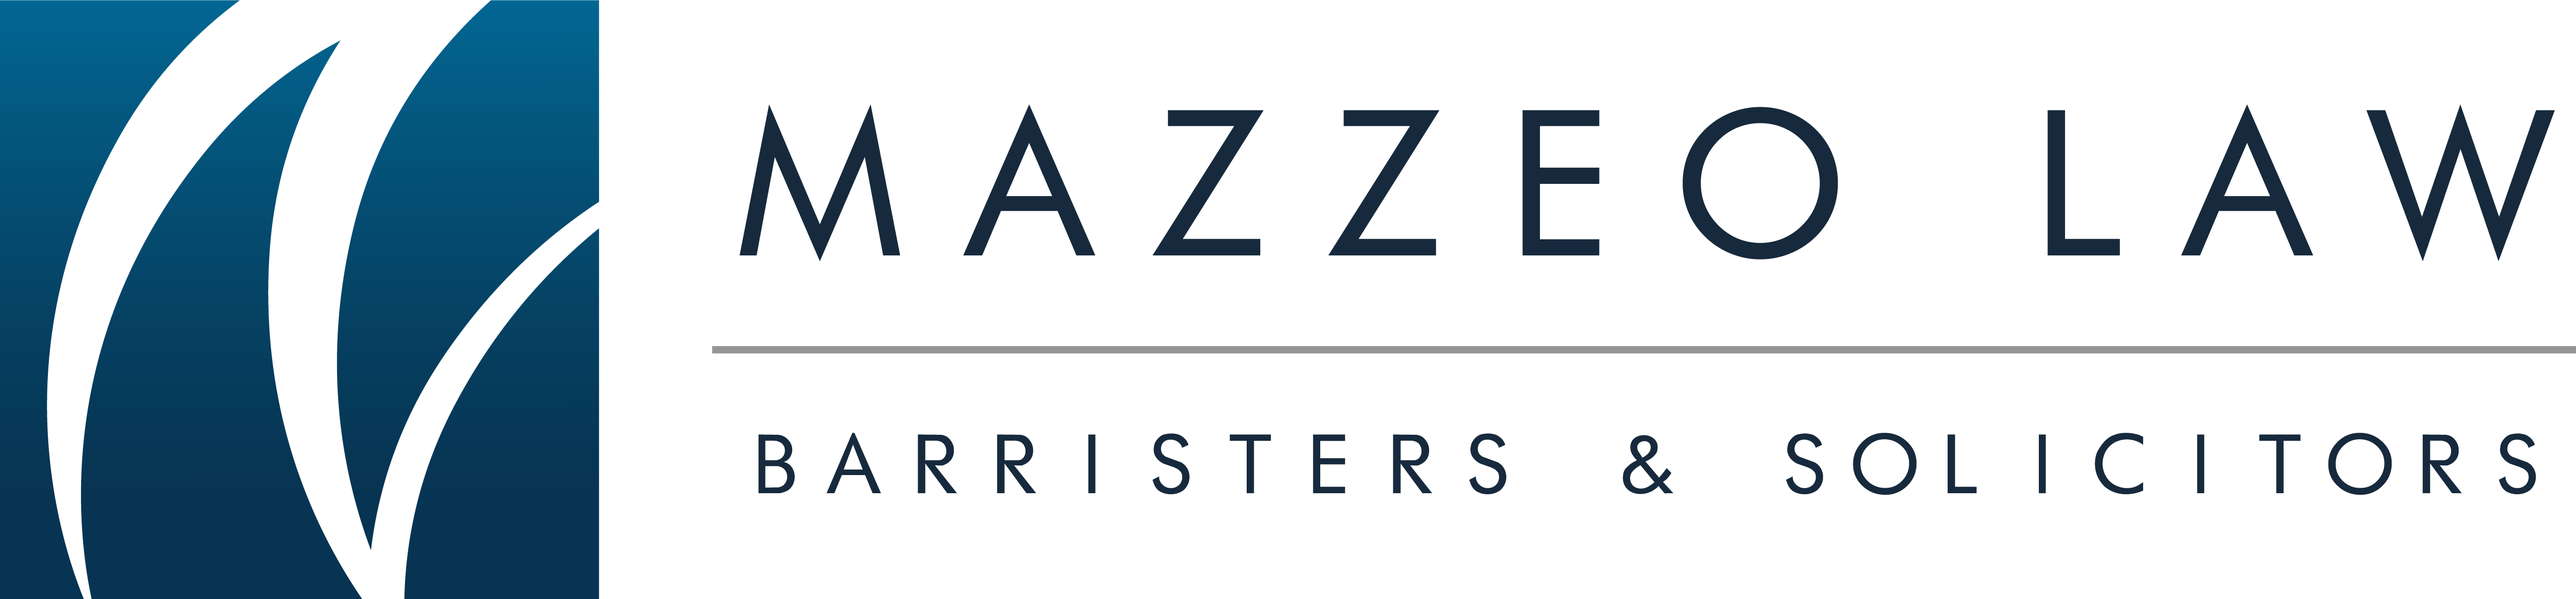 Mazzeo Law Barristers & Solicitors Shares Expertise On Domestic Contracts